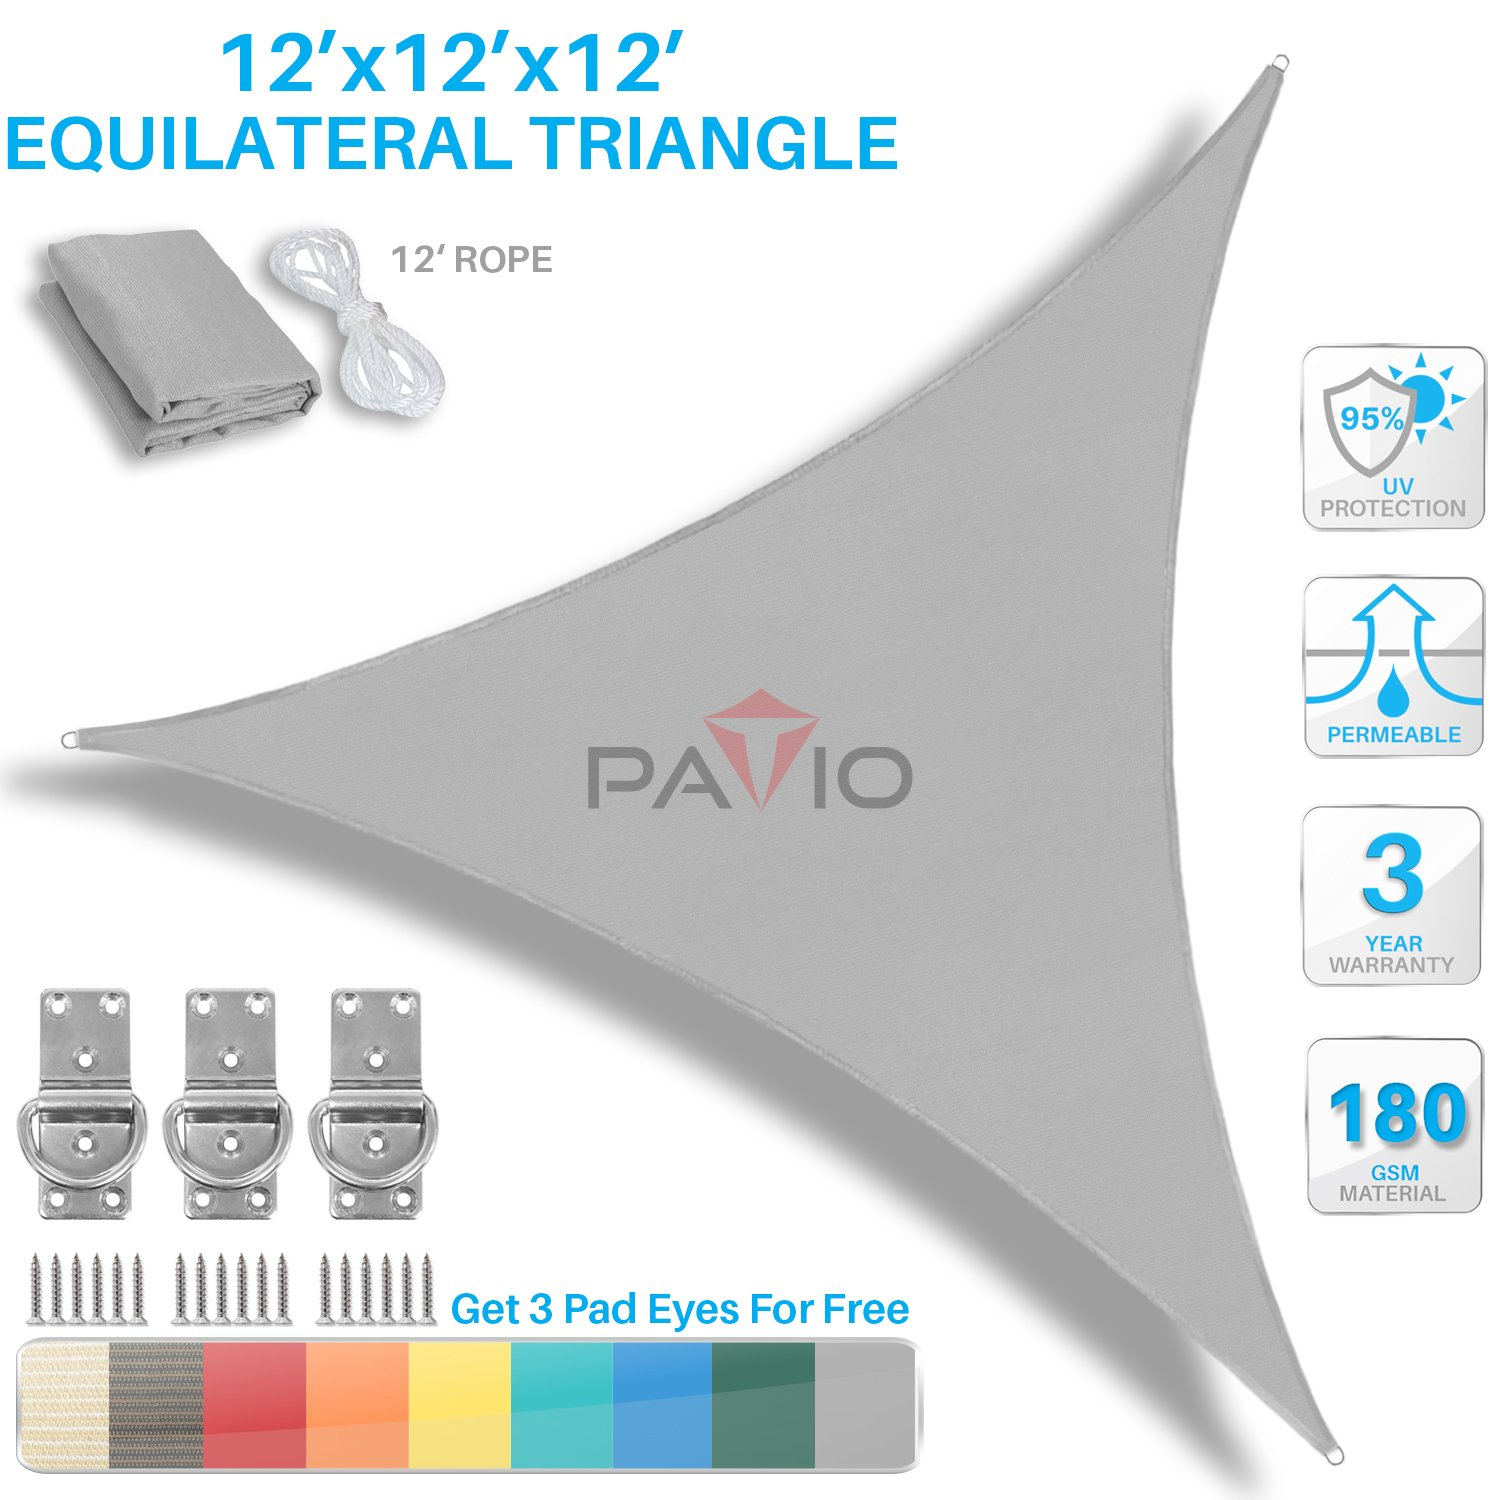 Patio Paradise 12' x 12' x 12' Light Grey Sun Shade Sail Equilateral Triangle Canopy - Permeable UV Block Fabric Durable Outdoor - Customized Available